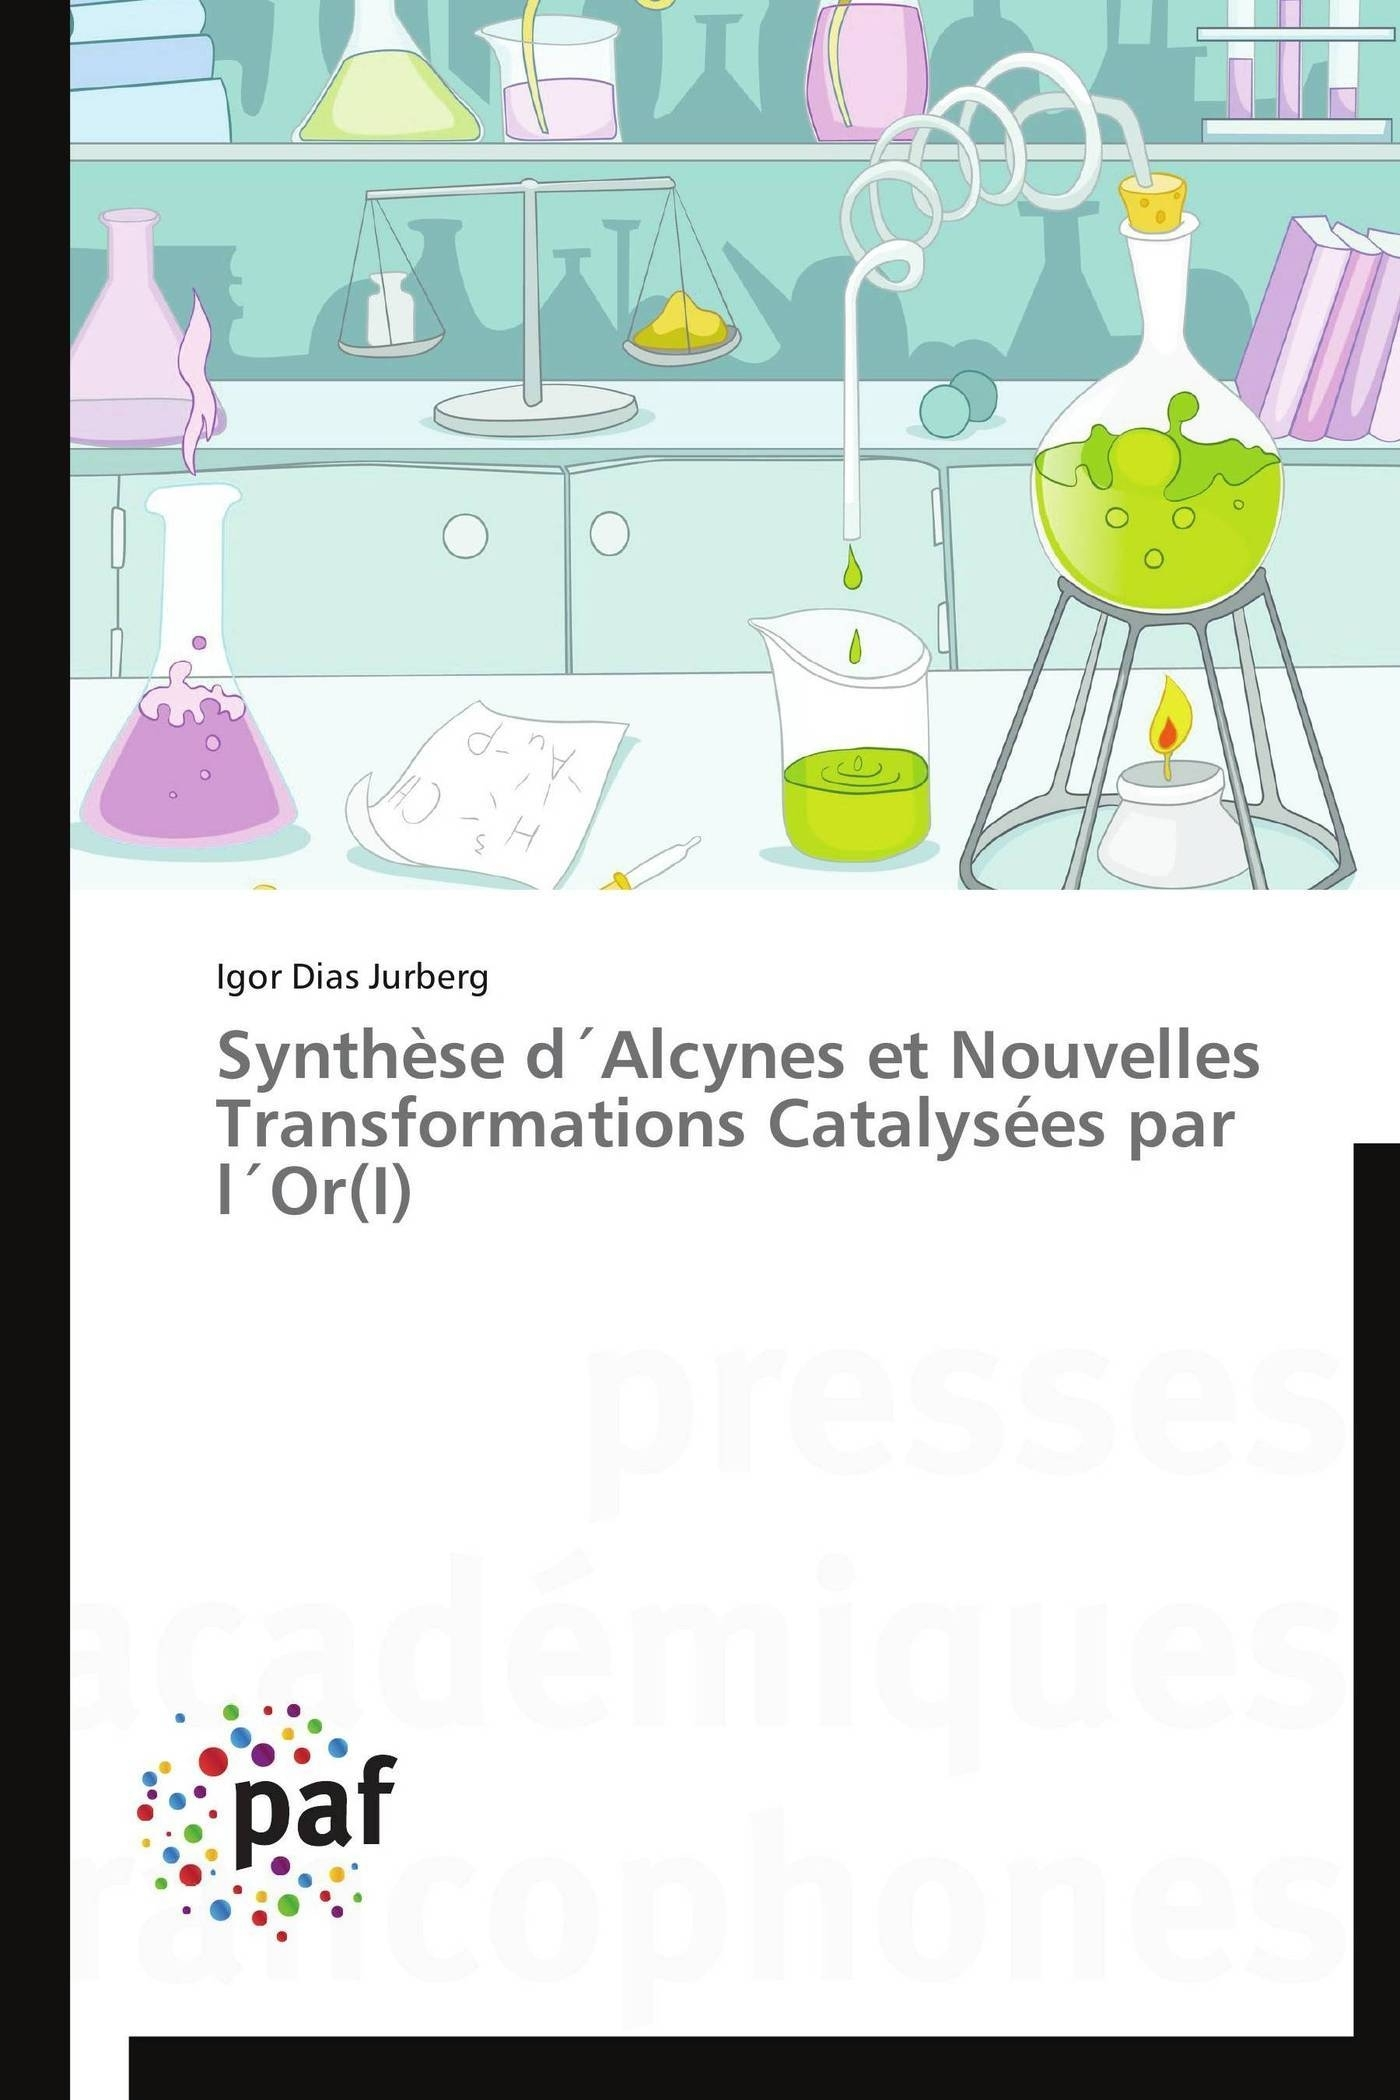 SYNTHESE D ALCYNES ET NOUVELLES TRANSFORMATIONS CATALYSEES PAR L OR(I)